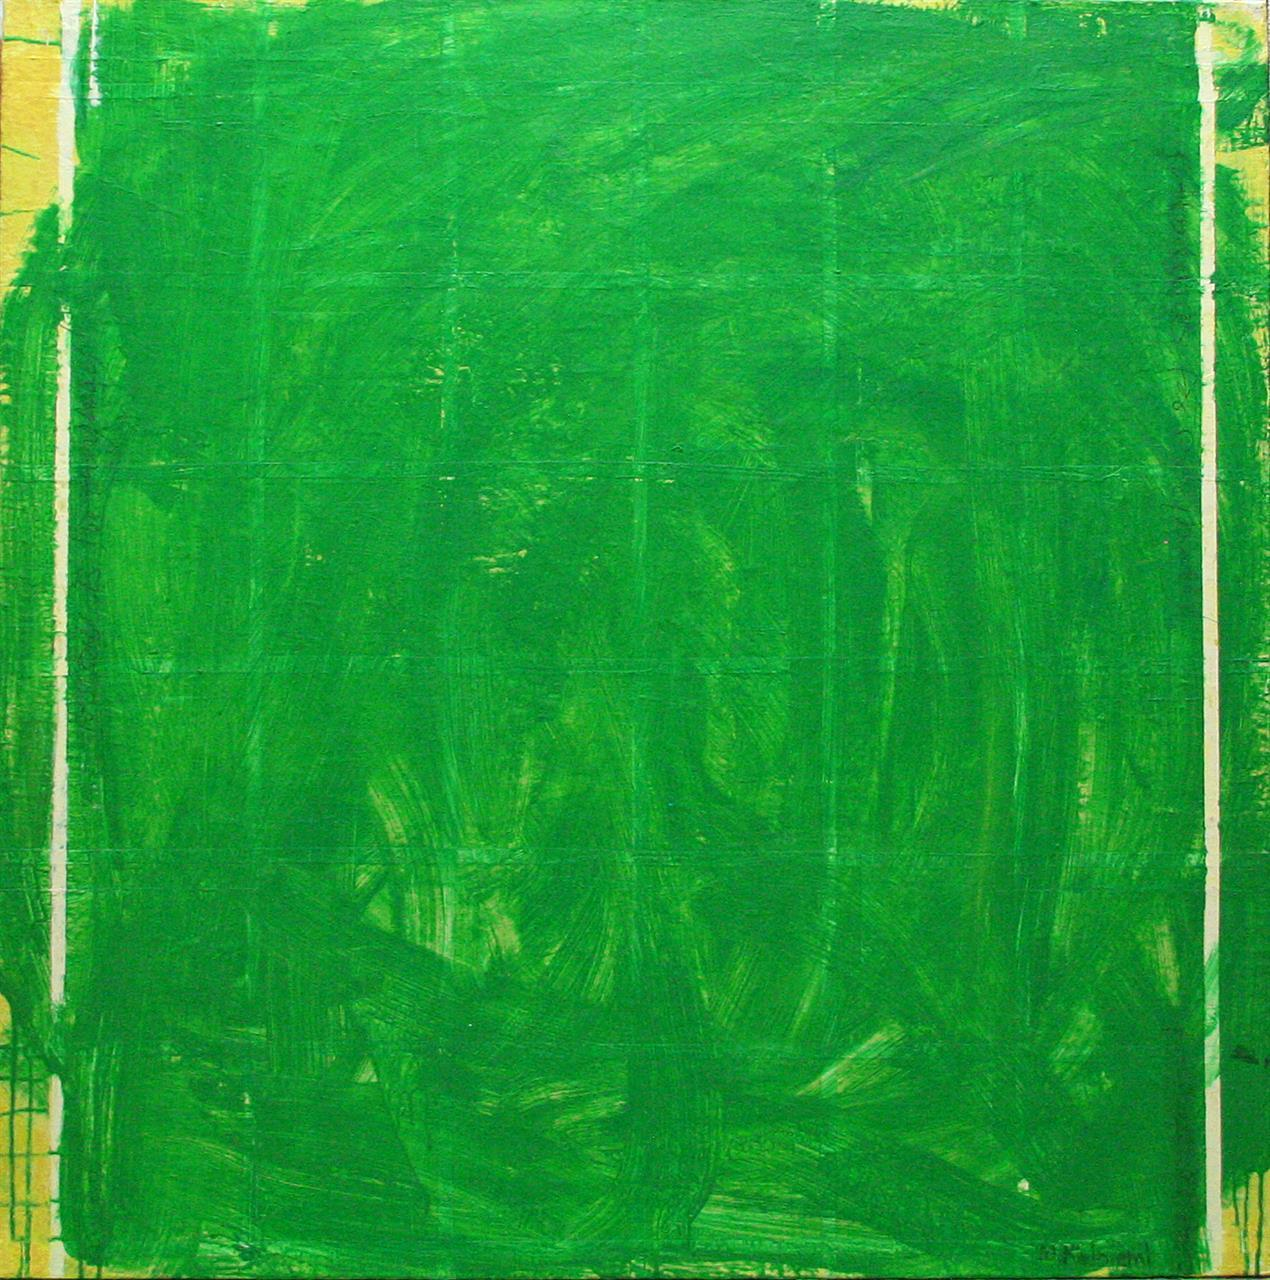 PAINTING OVER WITH GREEN COLOUR 100x100cm 2013